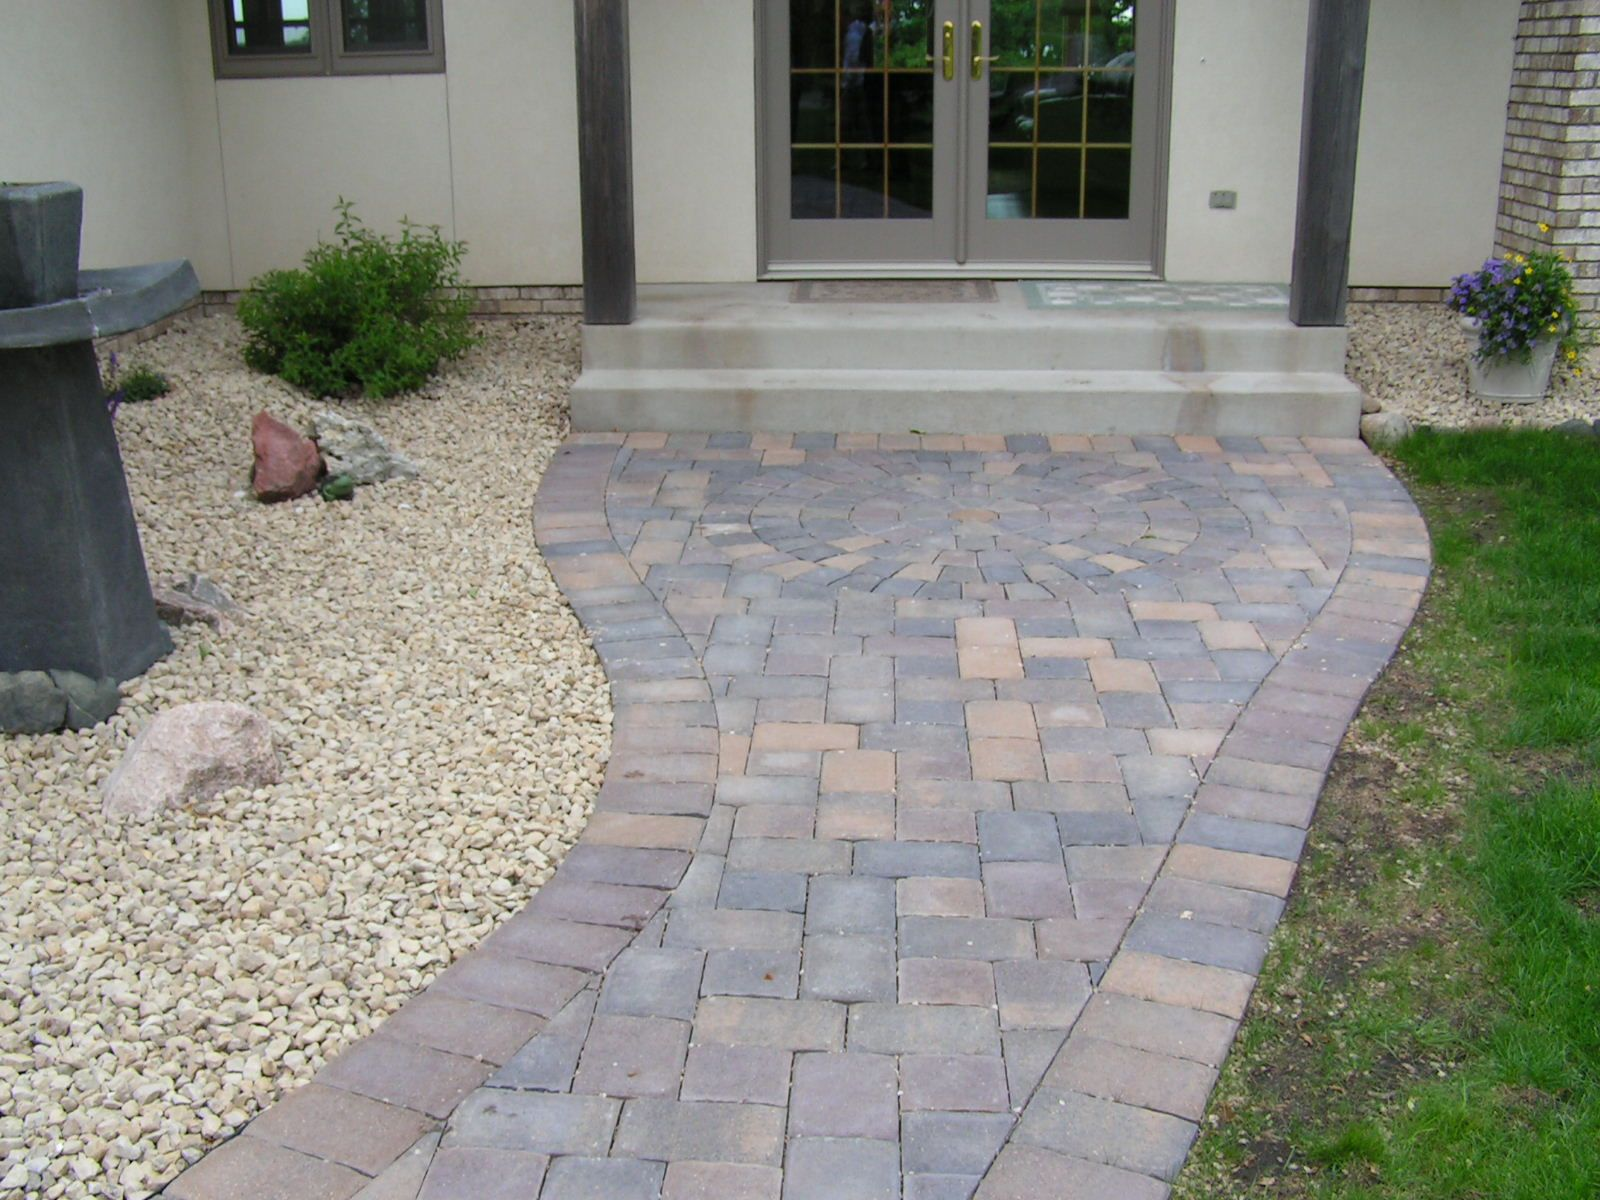 Paver ideas exterior designs of alexandria paver walks driveways for the home - Sidewalk pavers ideas ...